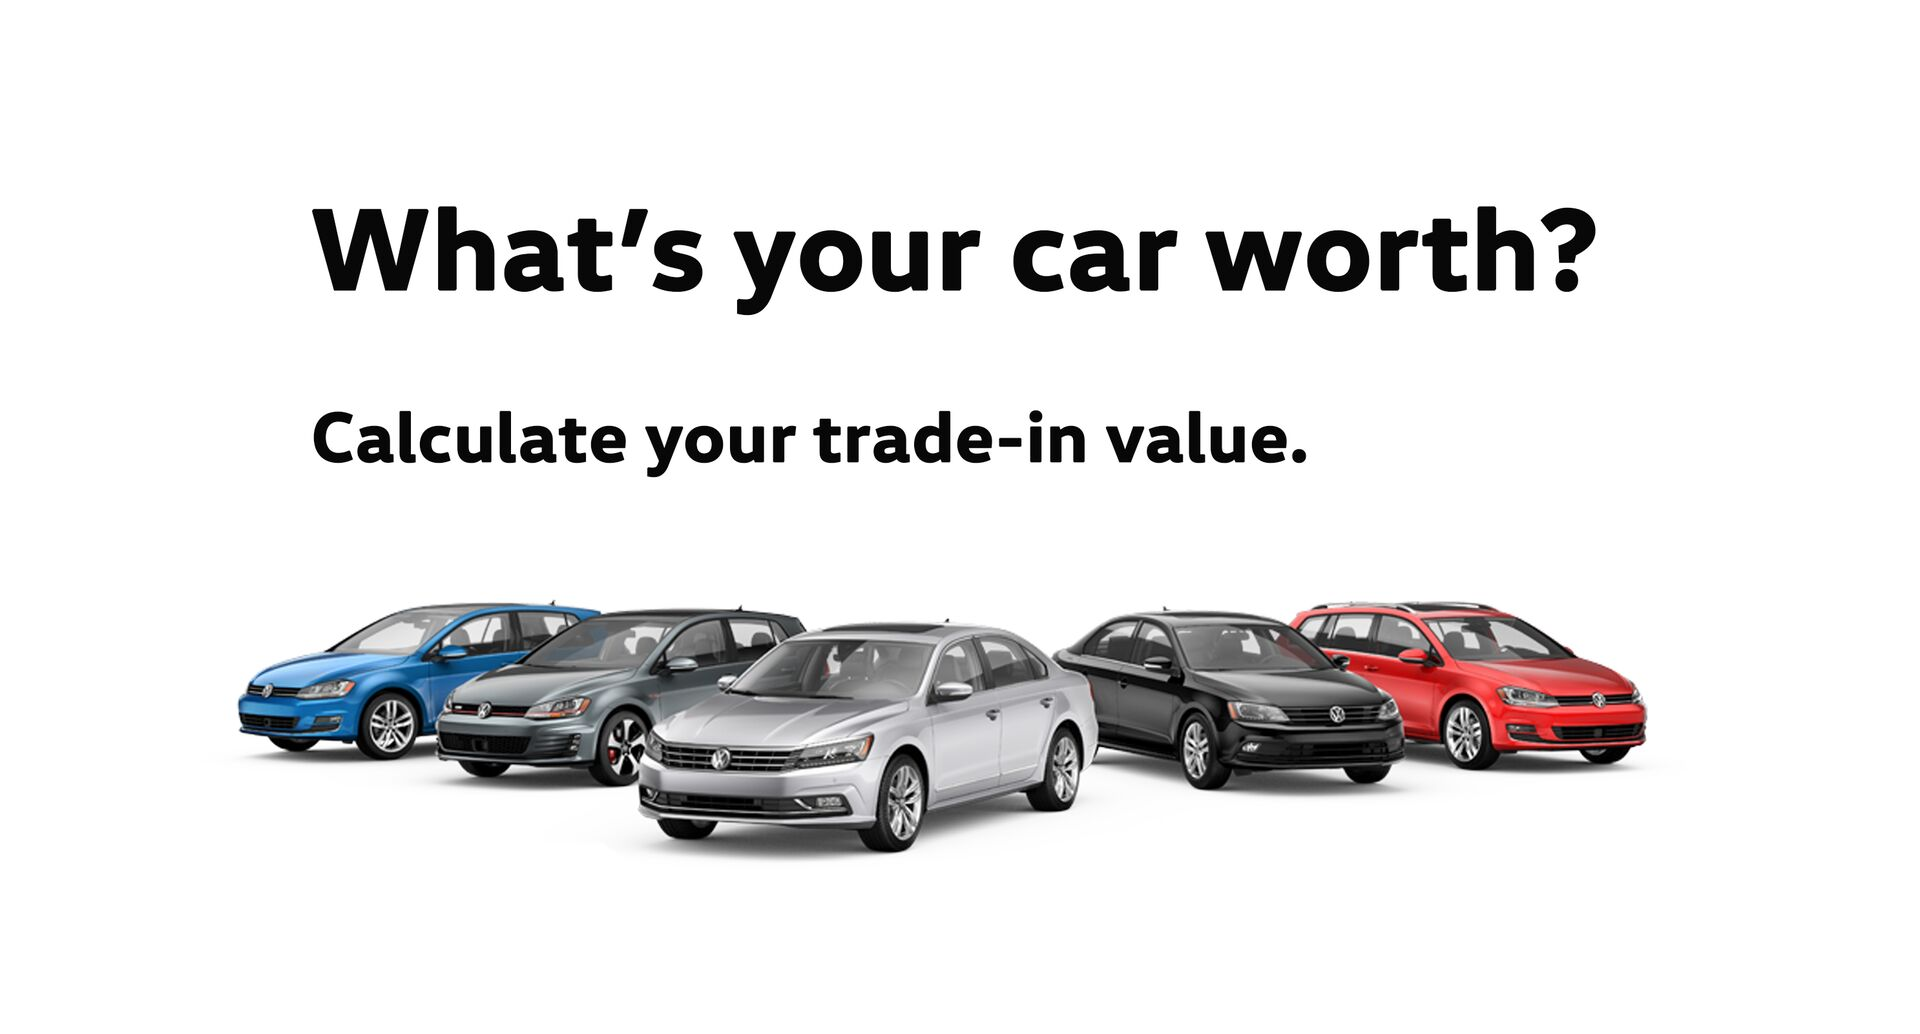 Calculate Your Trade-In Value